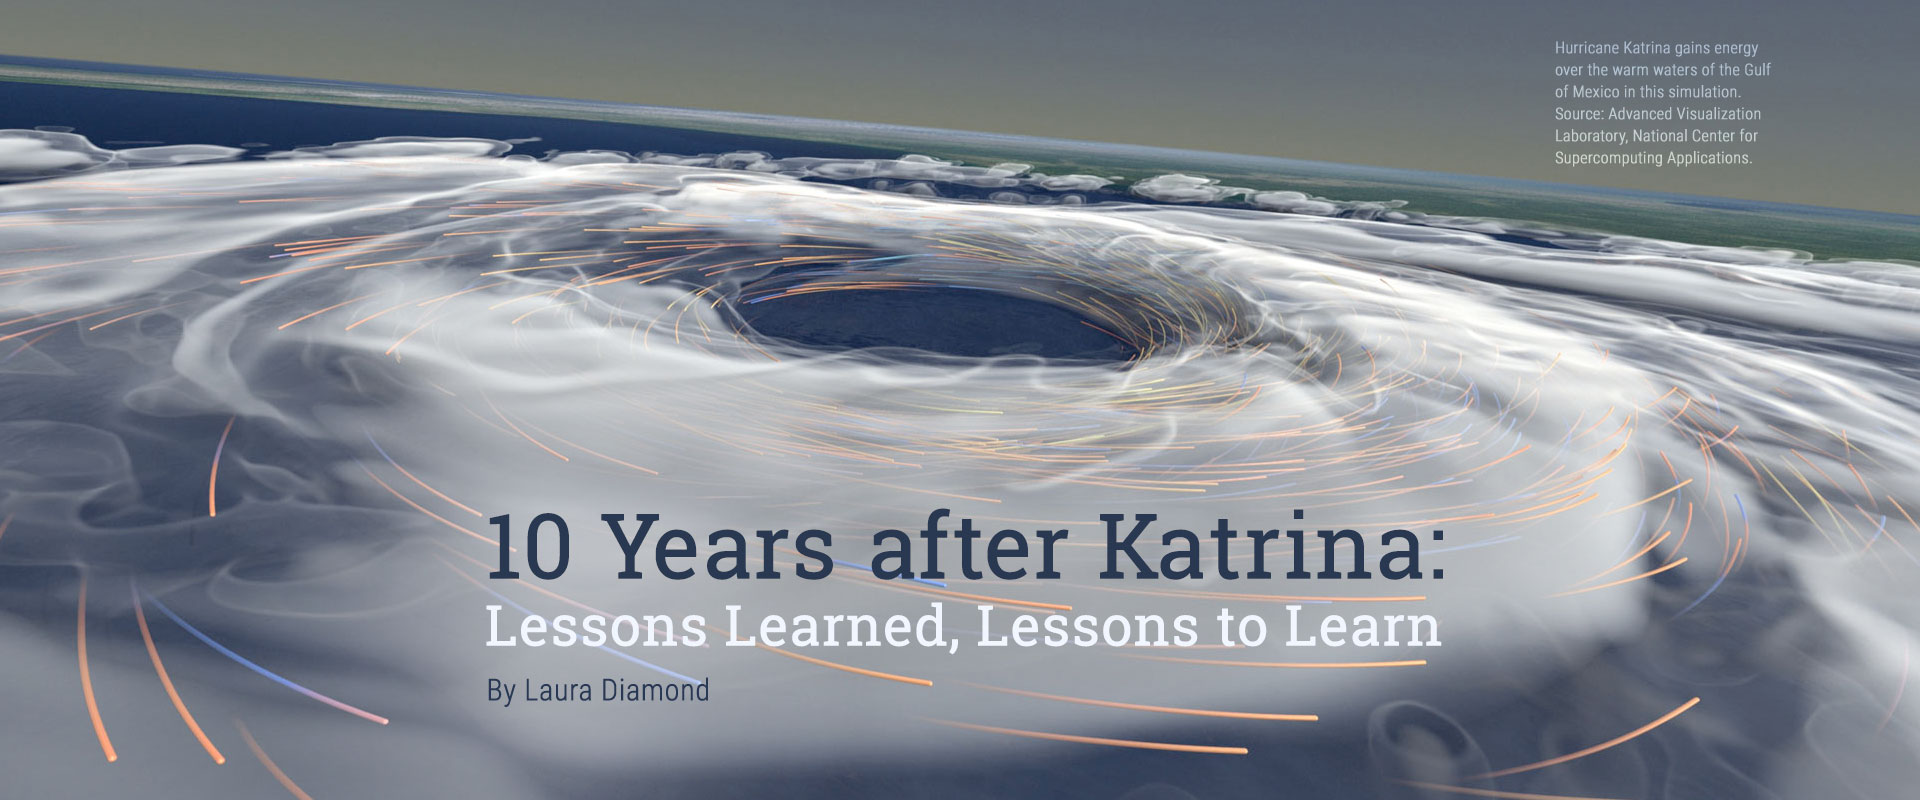 10 Years after Katrina: Lessons Learned, Lessons to Learn - By Laura Diamond